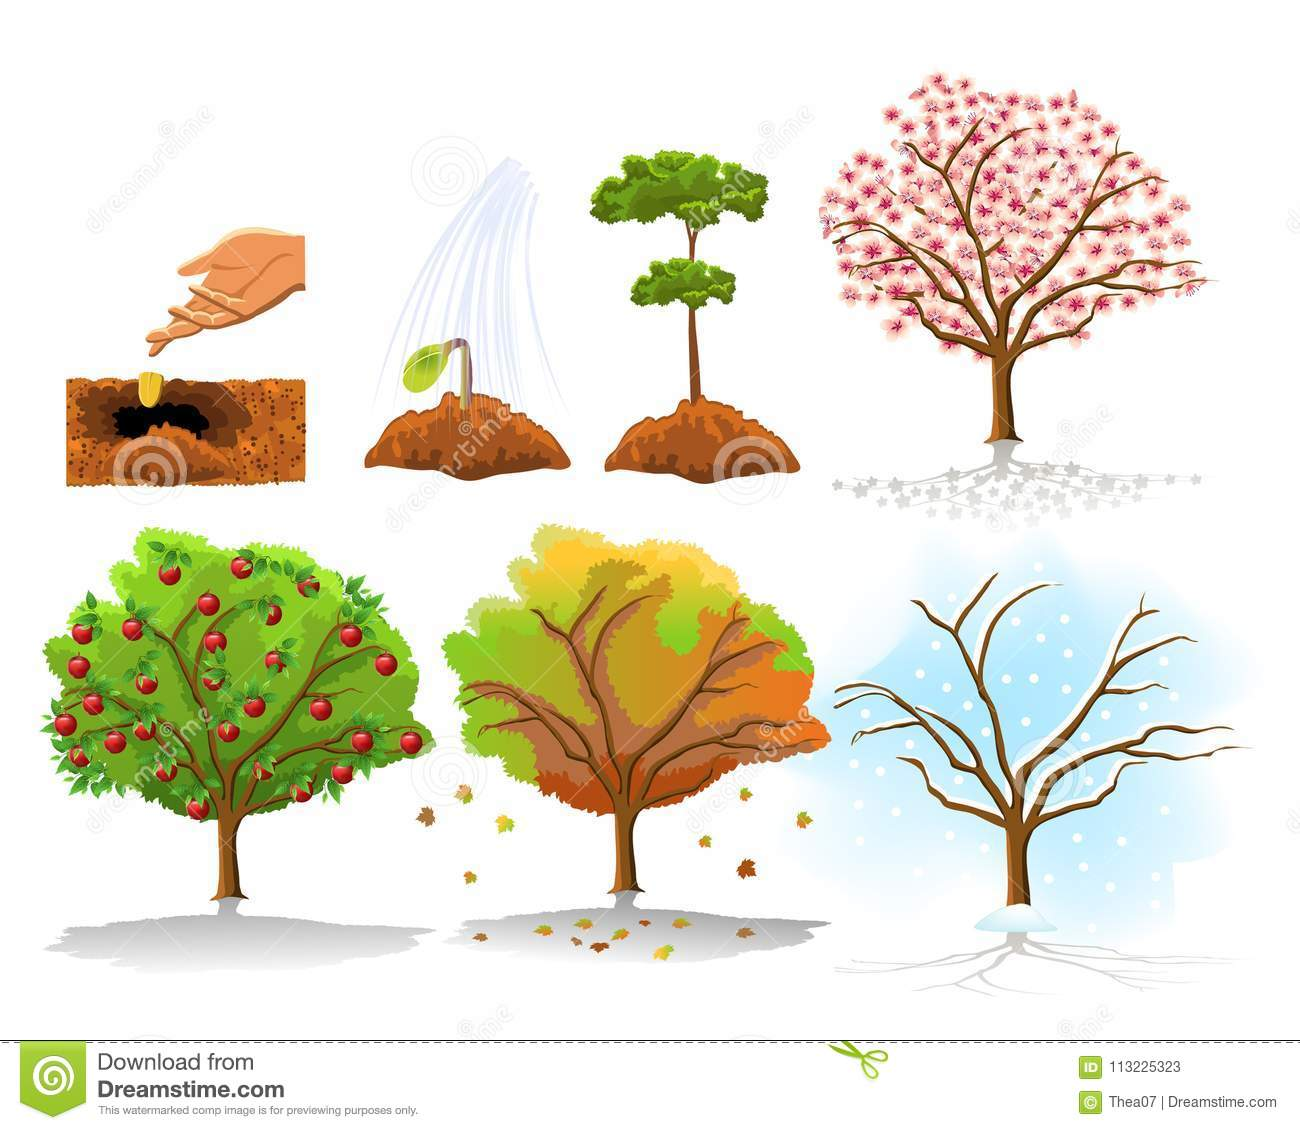 illustration of apple tree planting and growing stages in